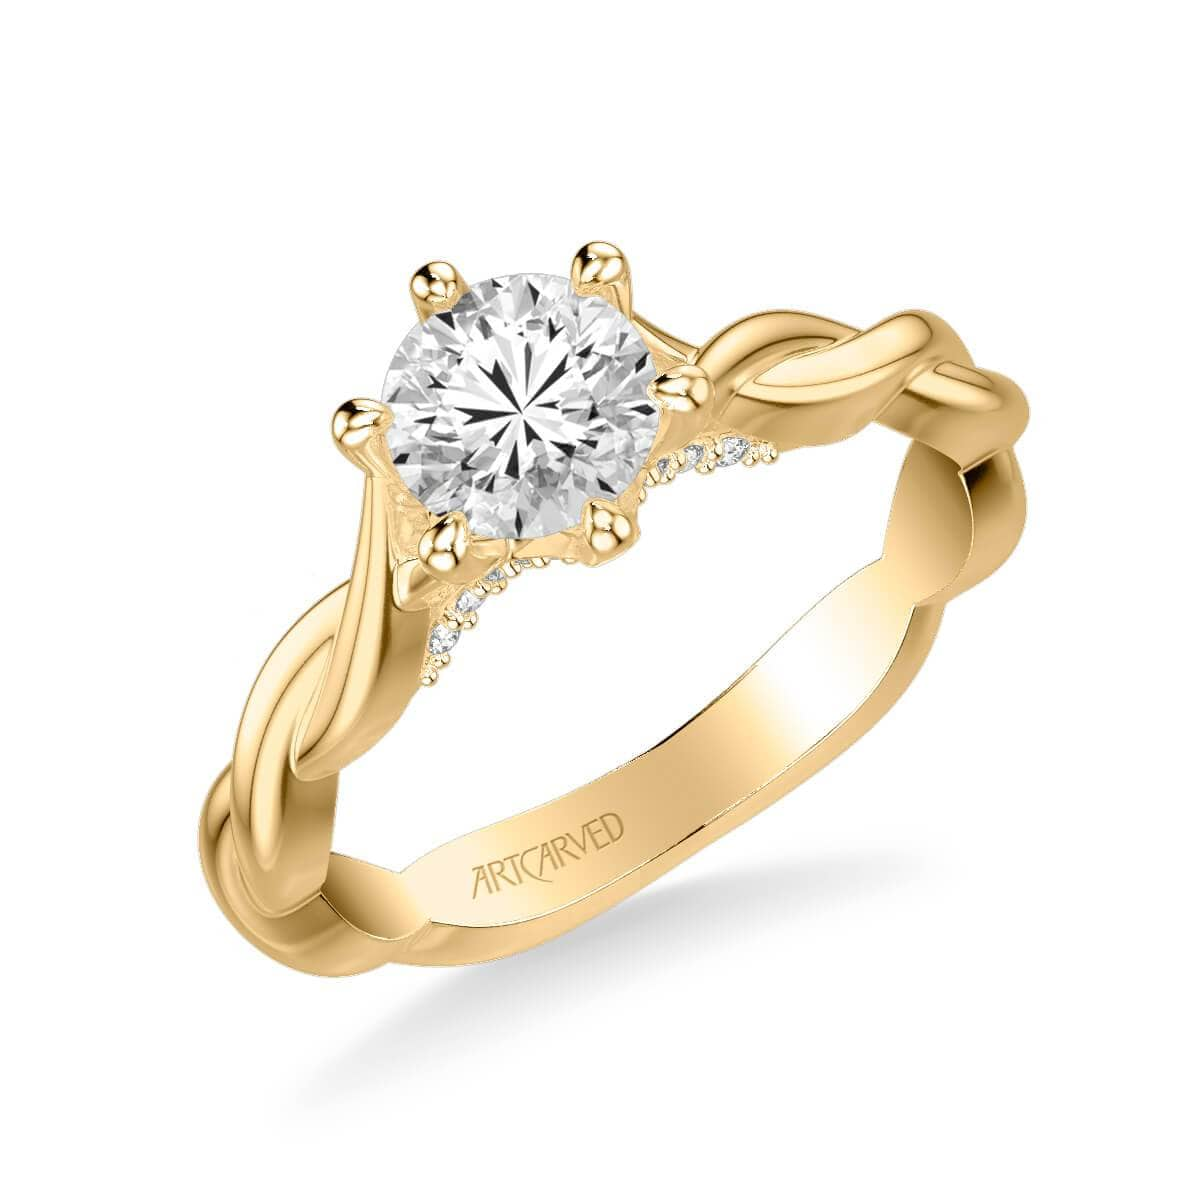 Tala Contemporary Solitaire Twist Diamond Engagement Ring